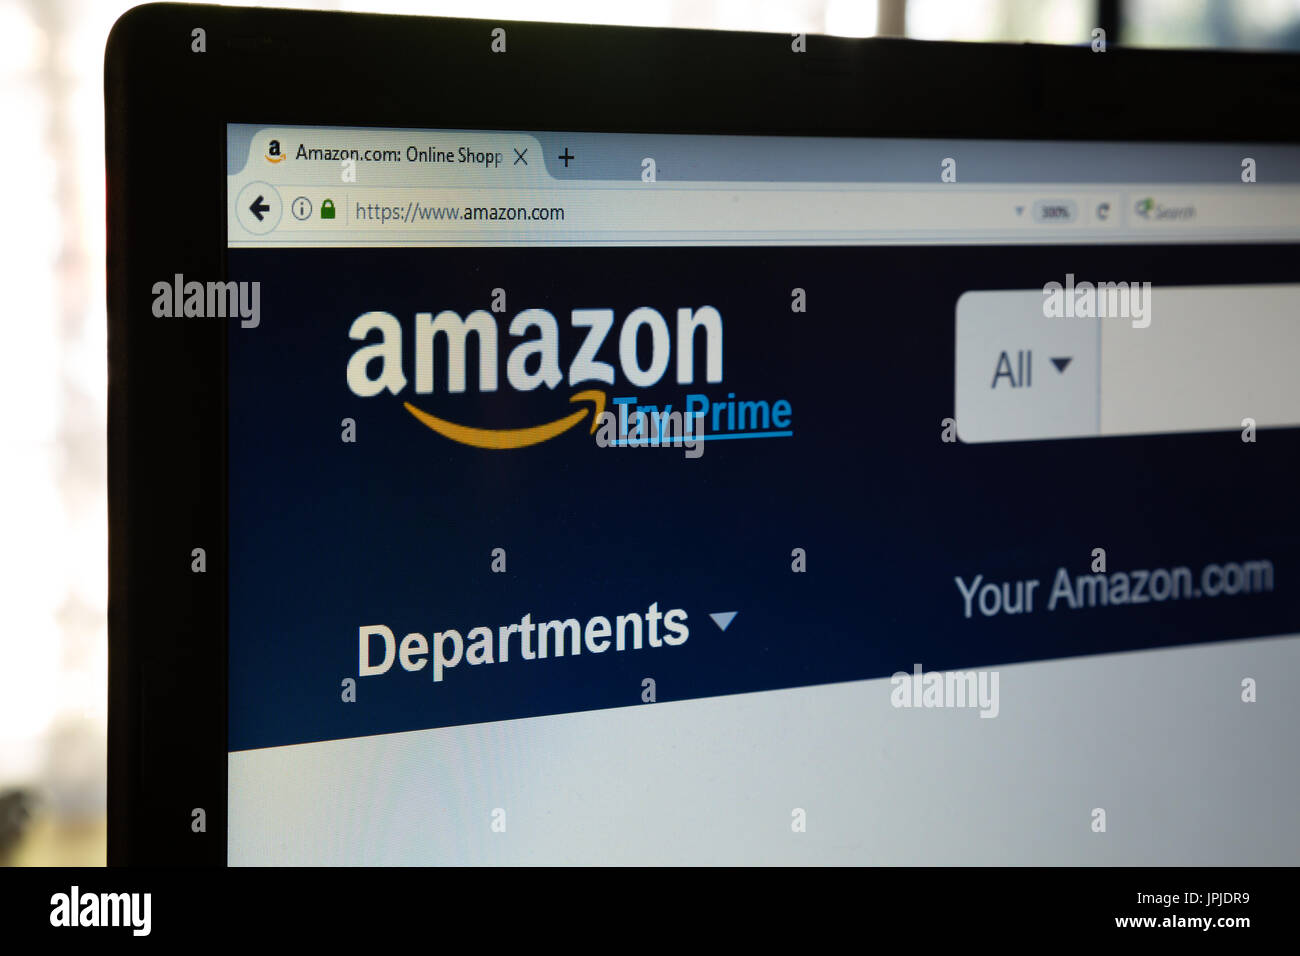 Amazon home page on a laptop computer screen - Stock Image